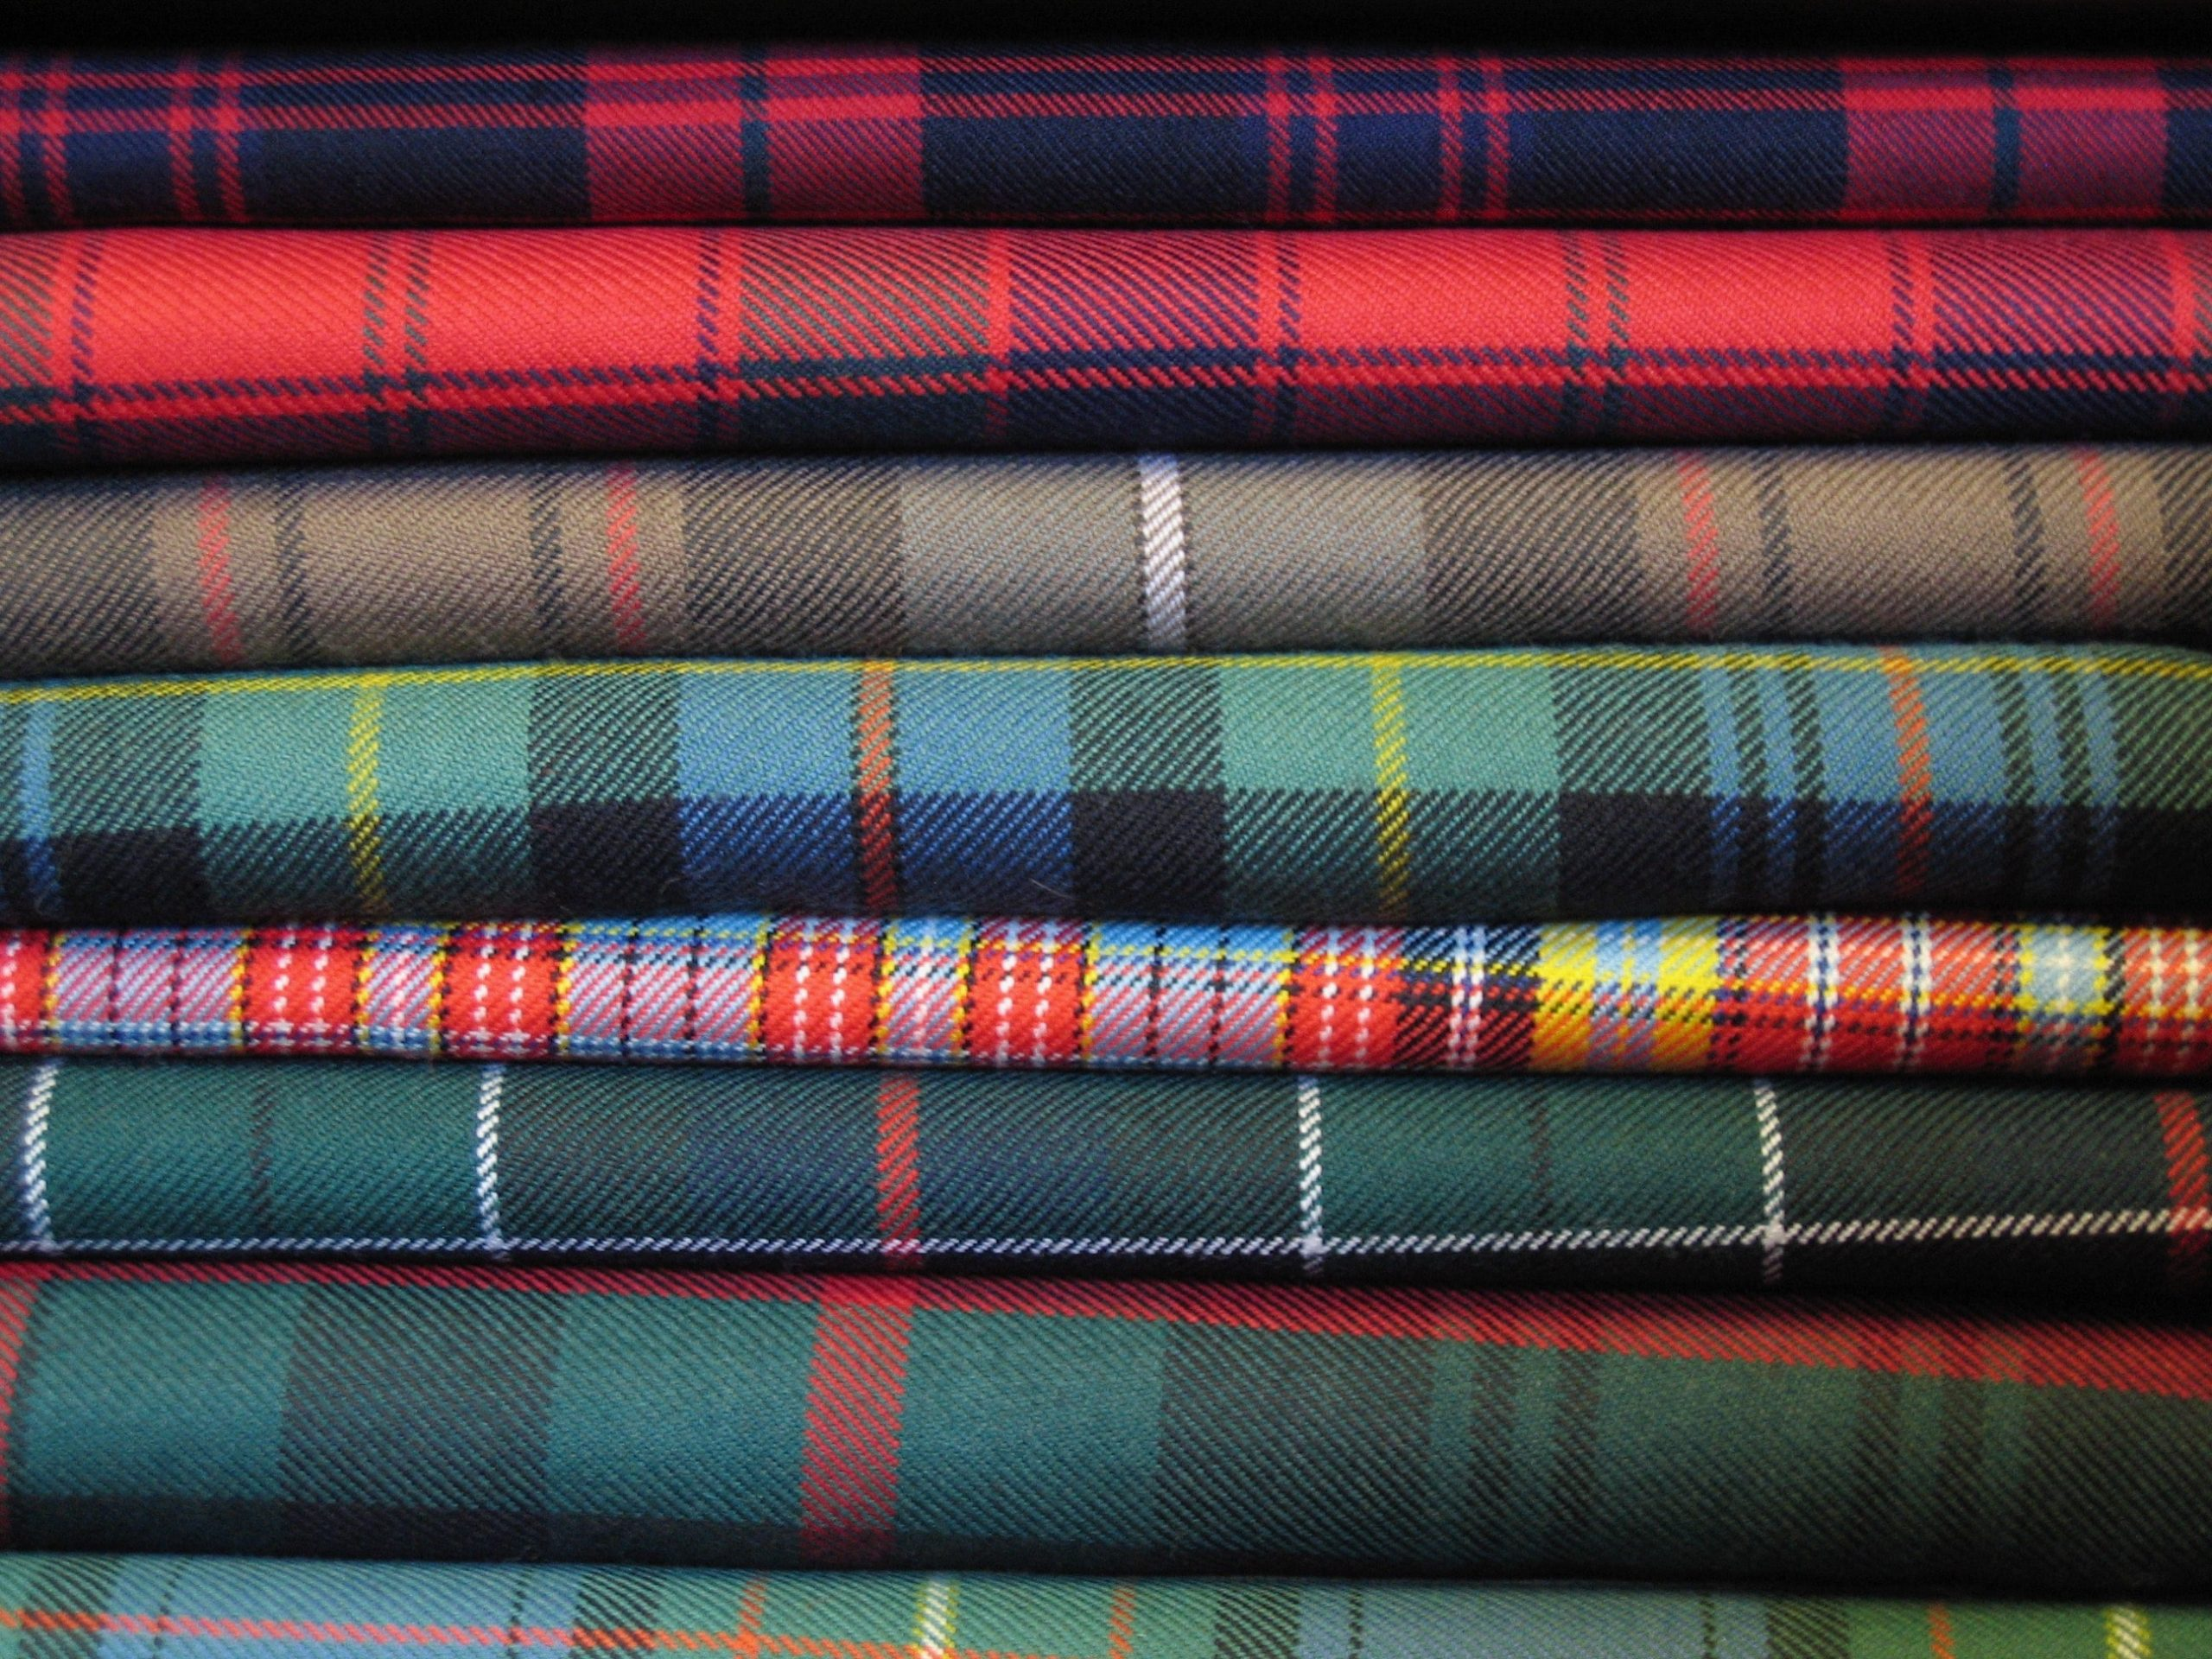 Tartan vs Plaid: what's the difference?